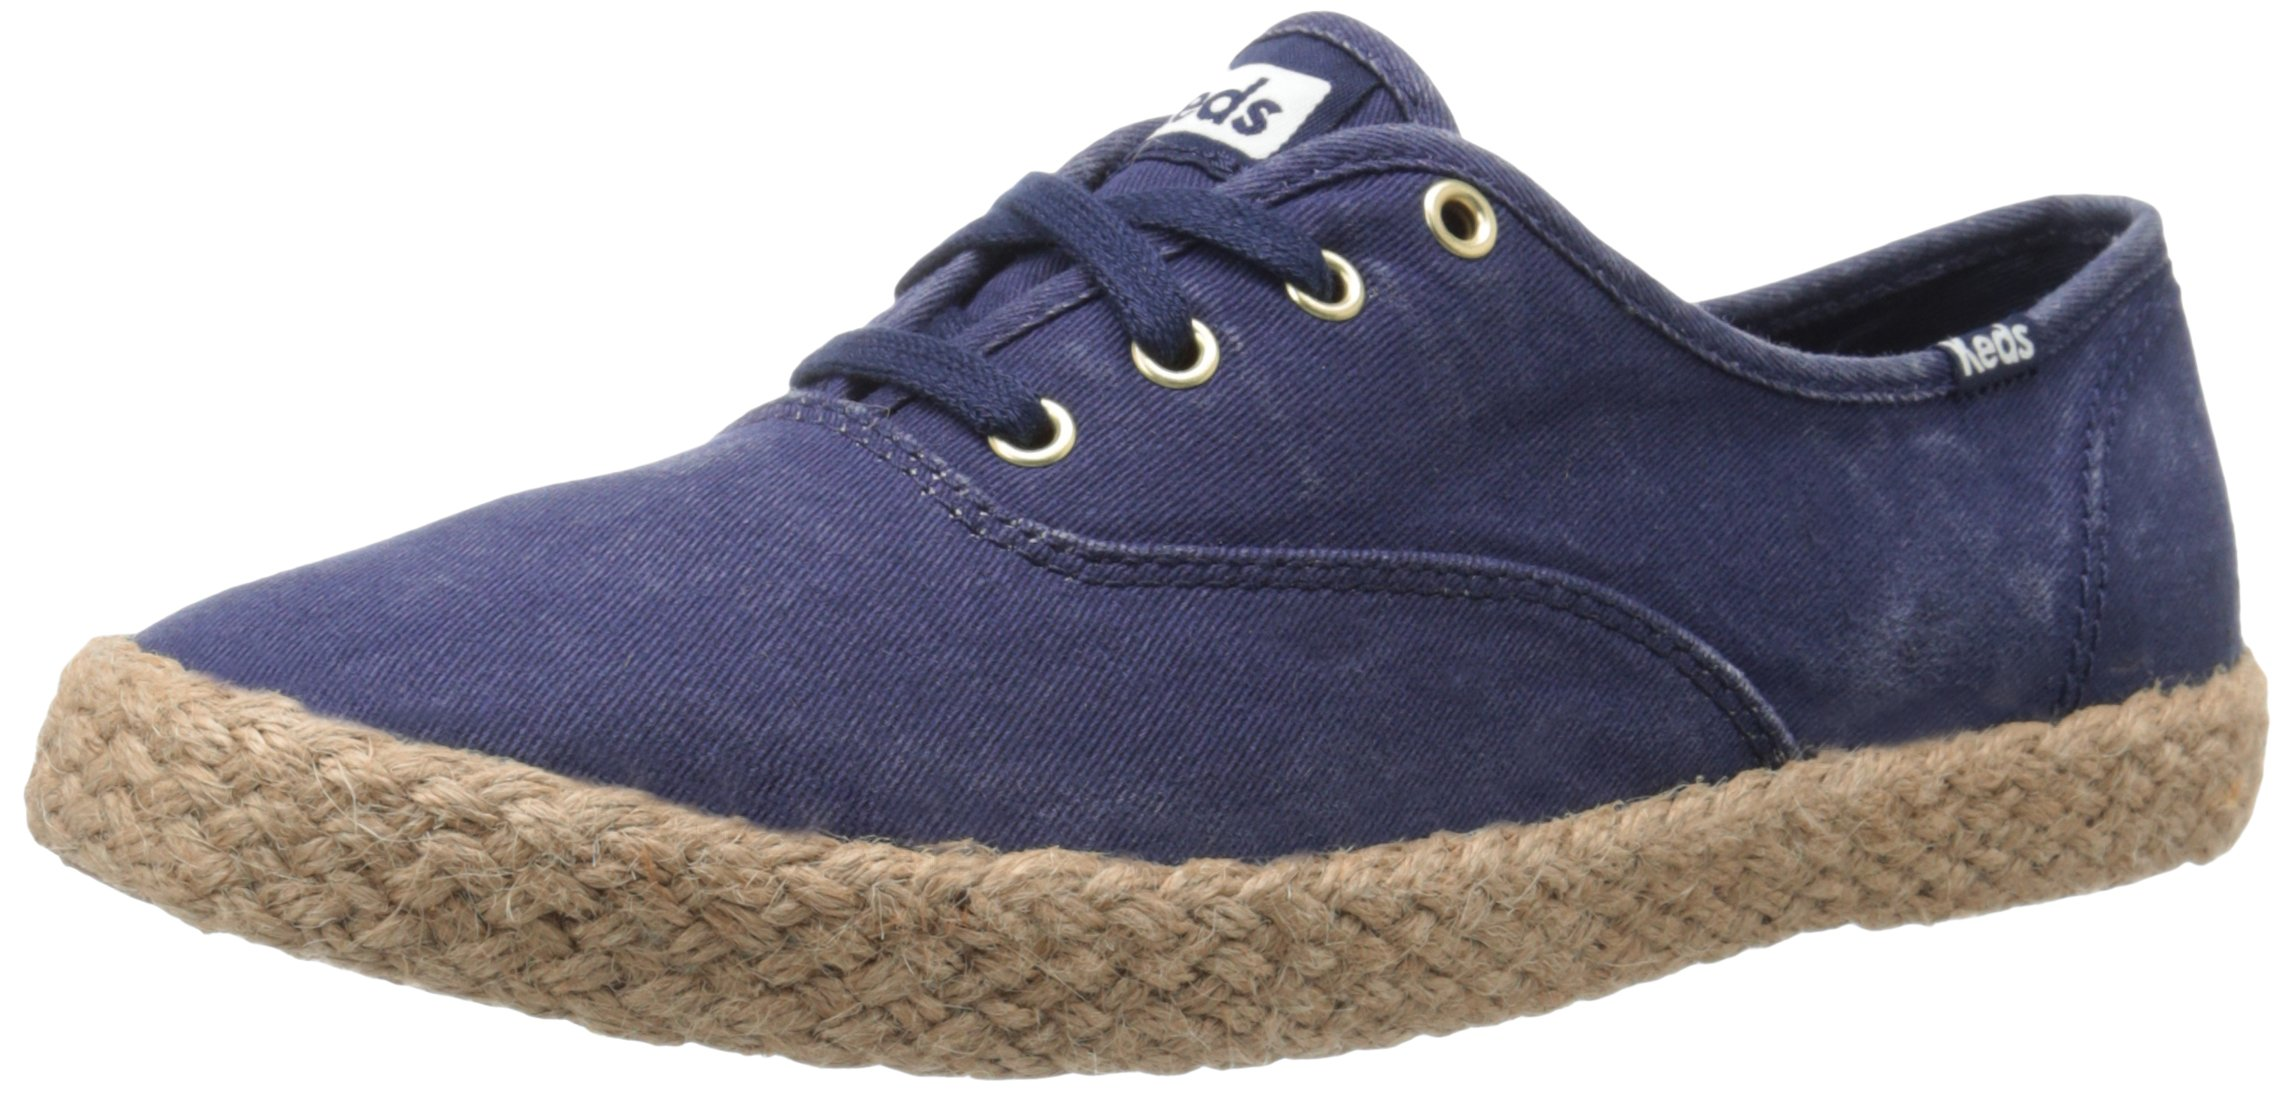 Keds Women's Champion Washed Jute Fashion Sneaker, Peacoat Navy, 7 M US